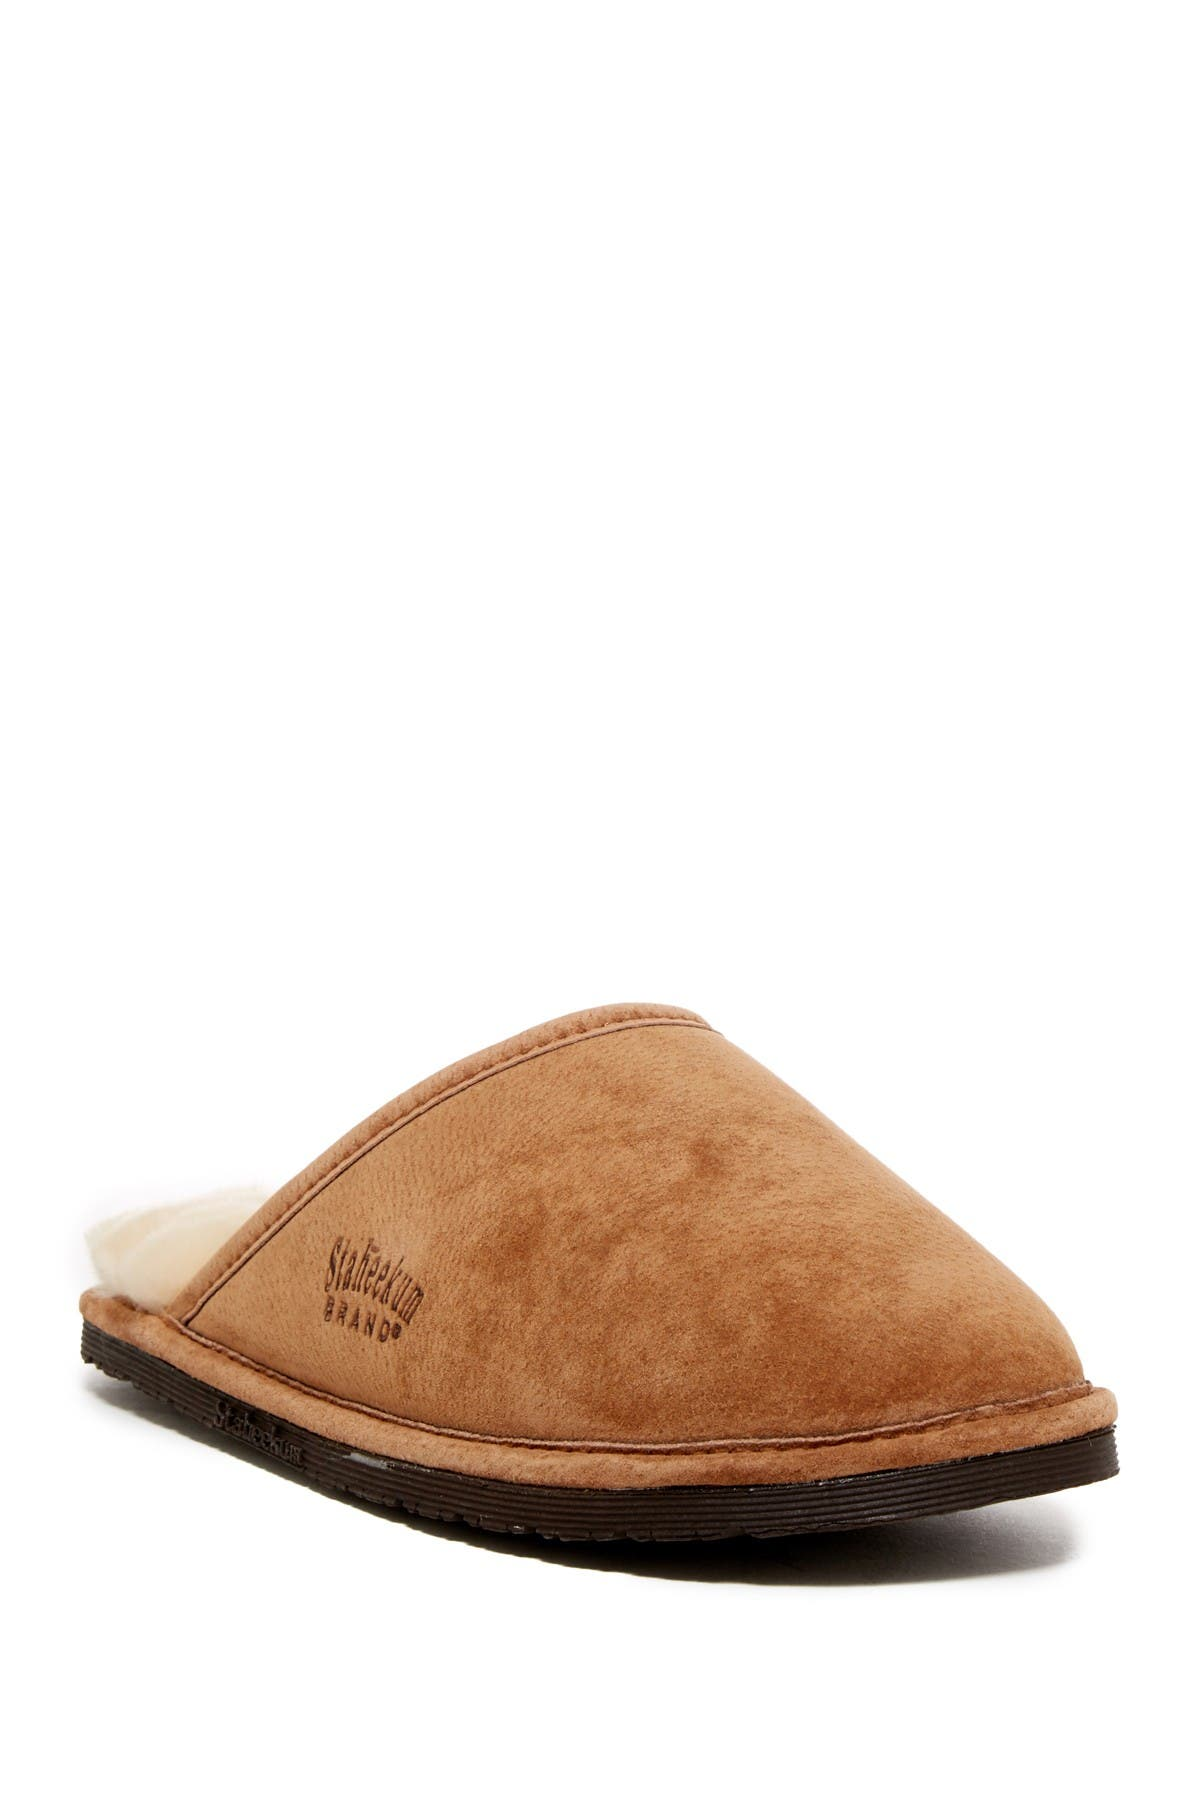 Image of Western Chief Alpine Genuine Shearling Slipper